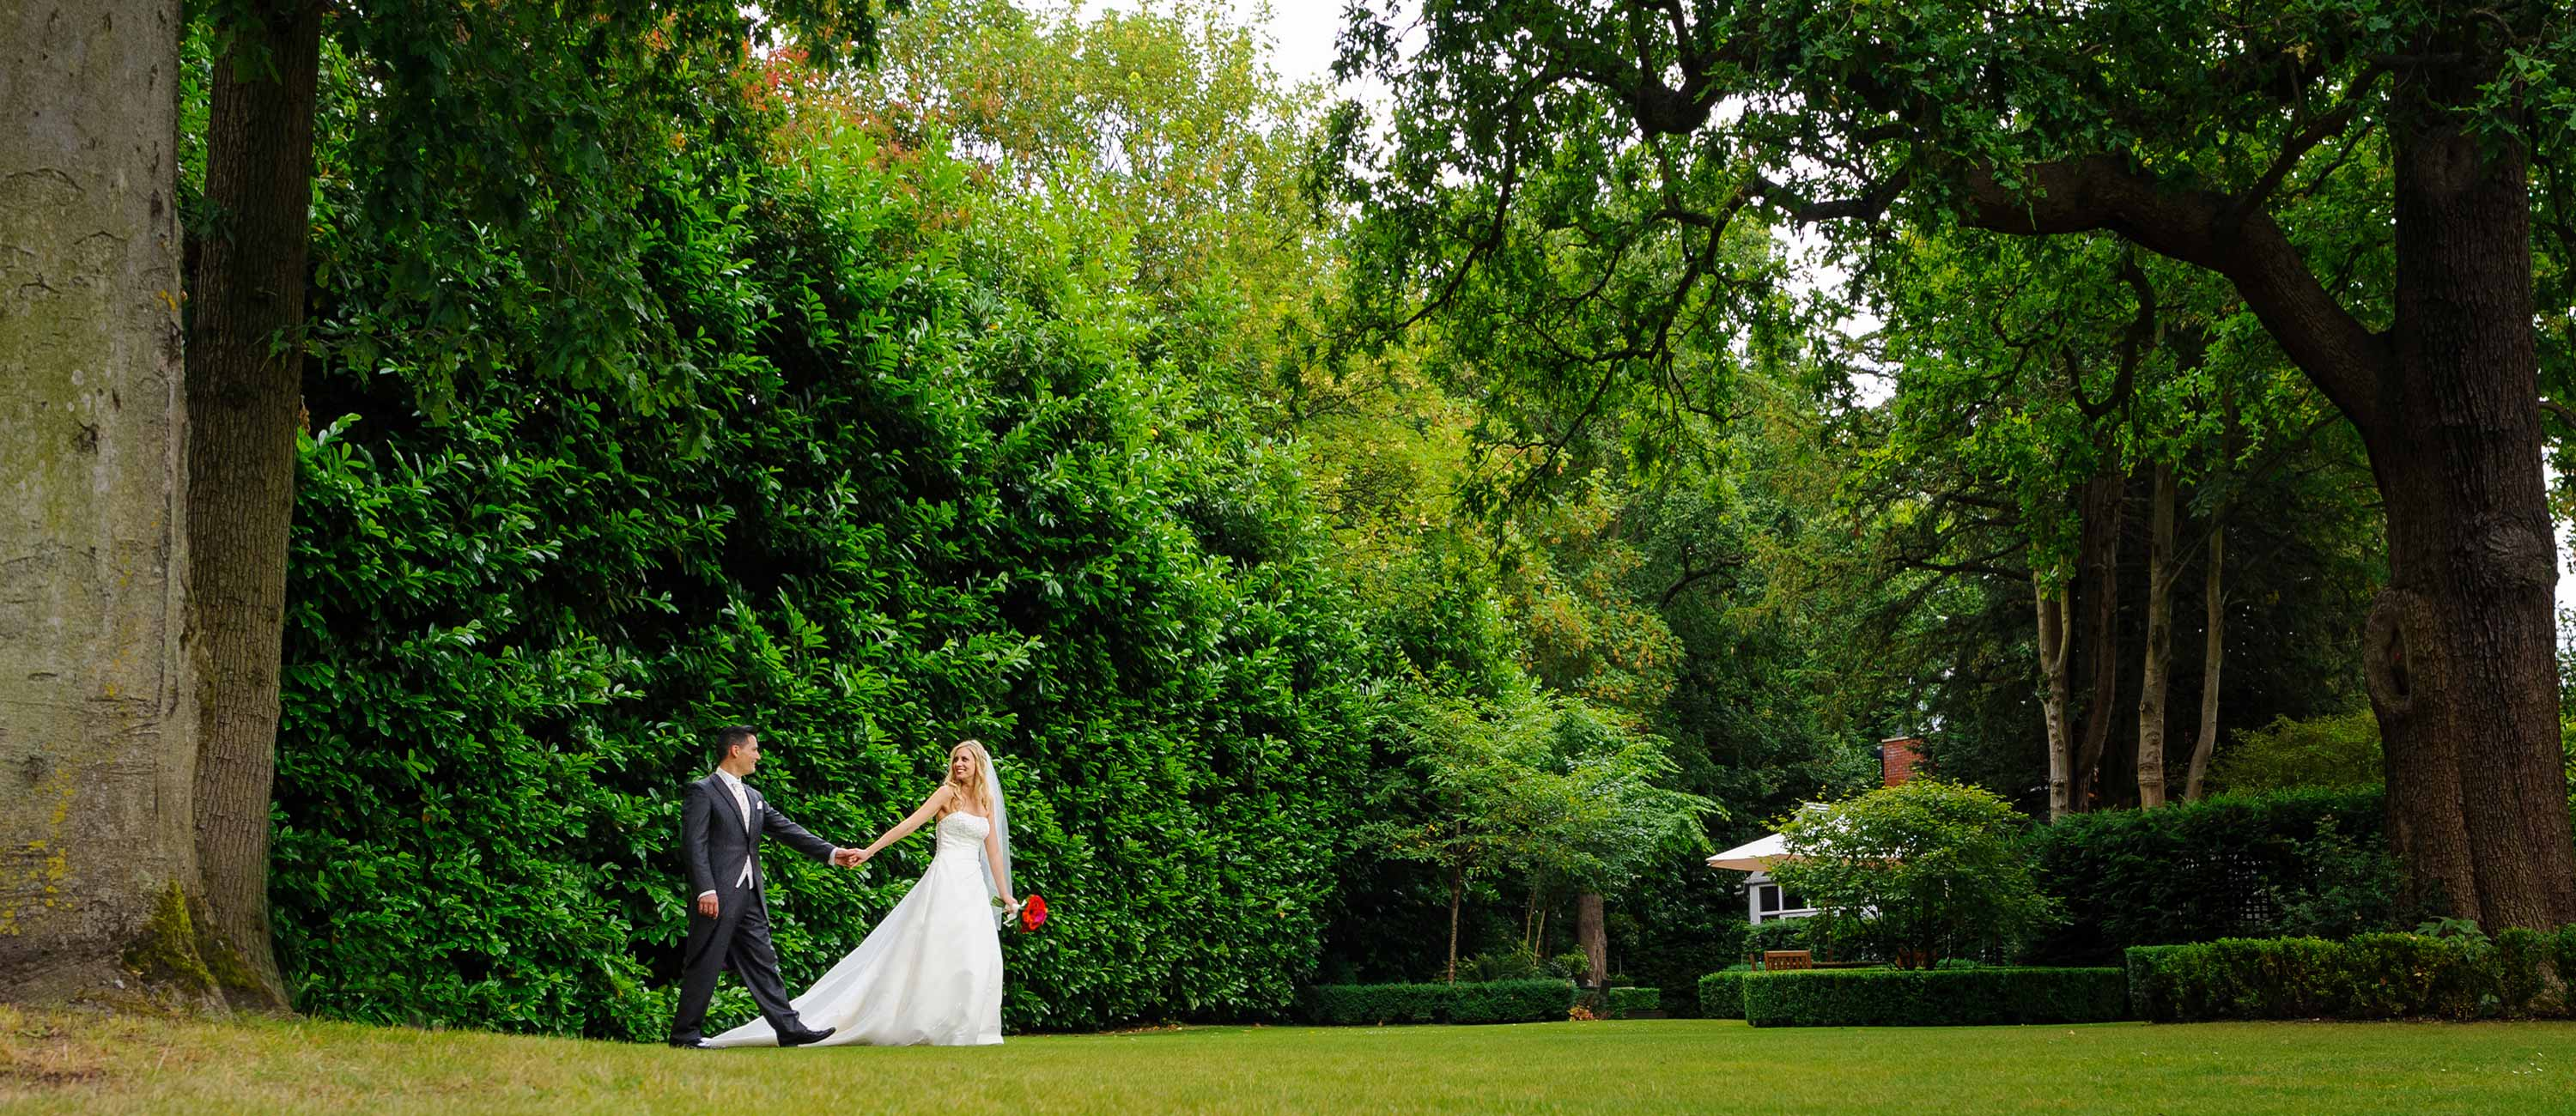 recommended wedding photographer bull inn gerrards cross